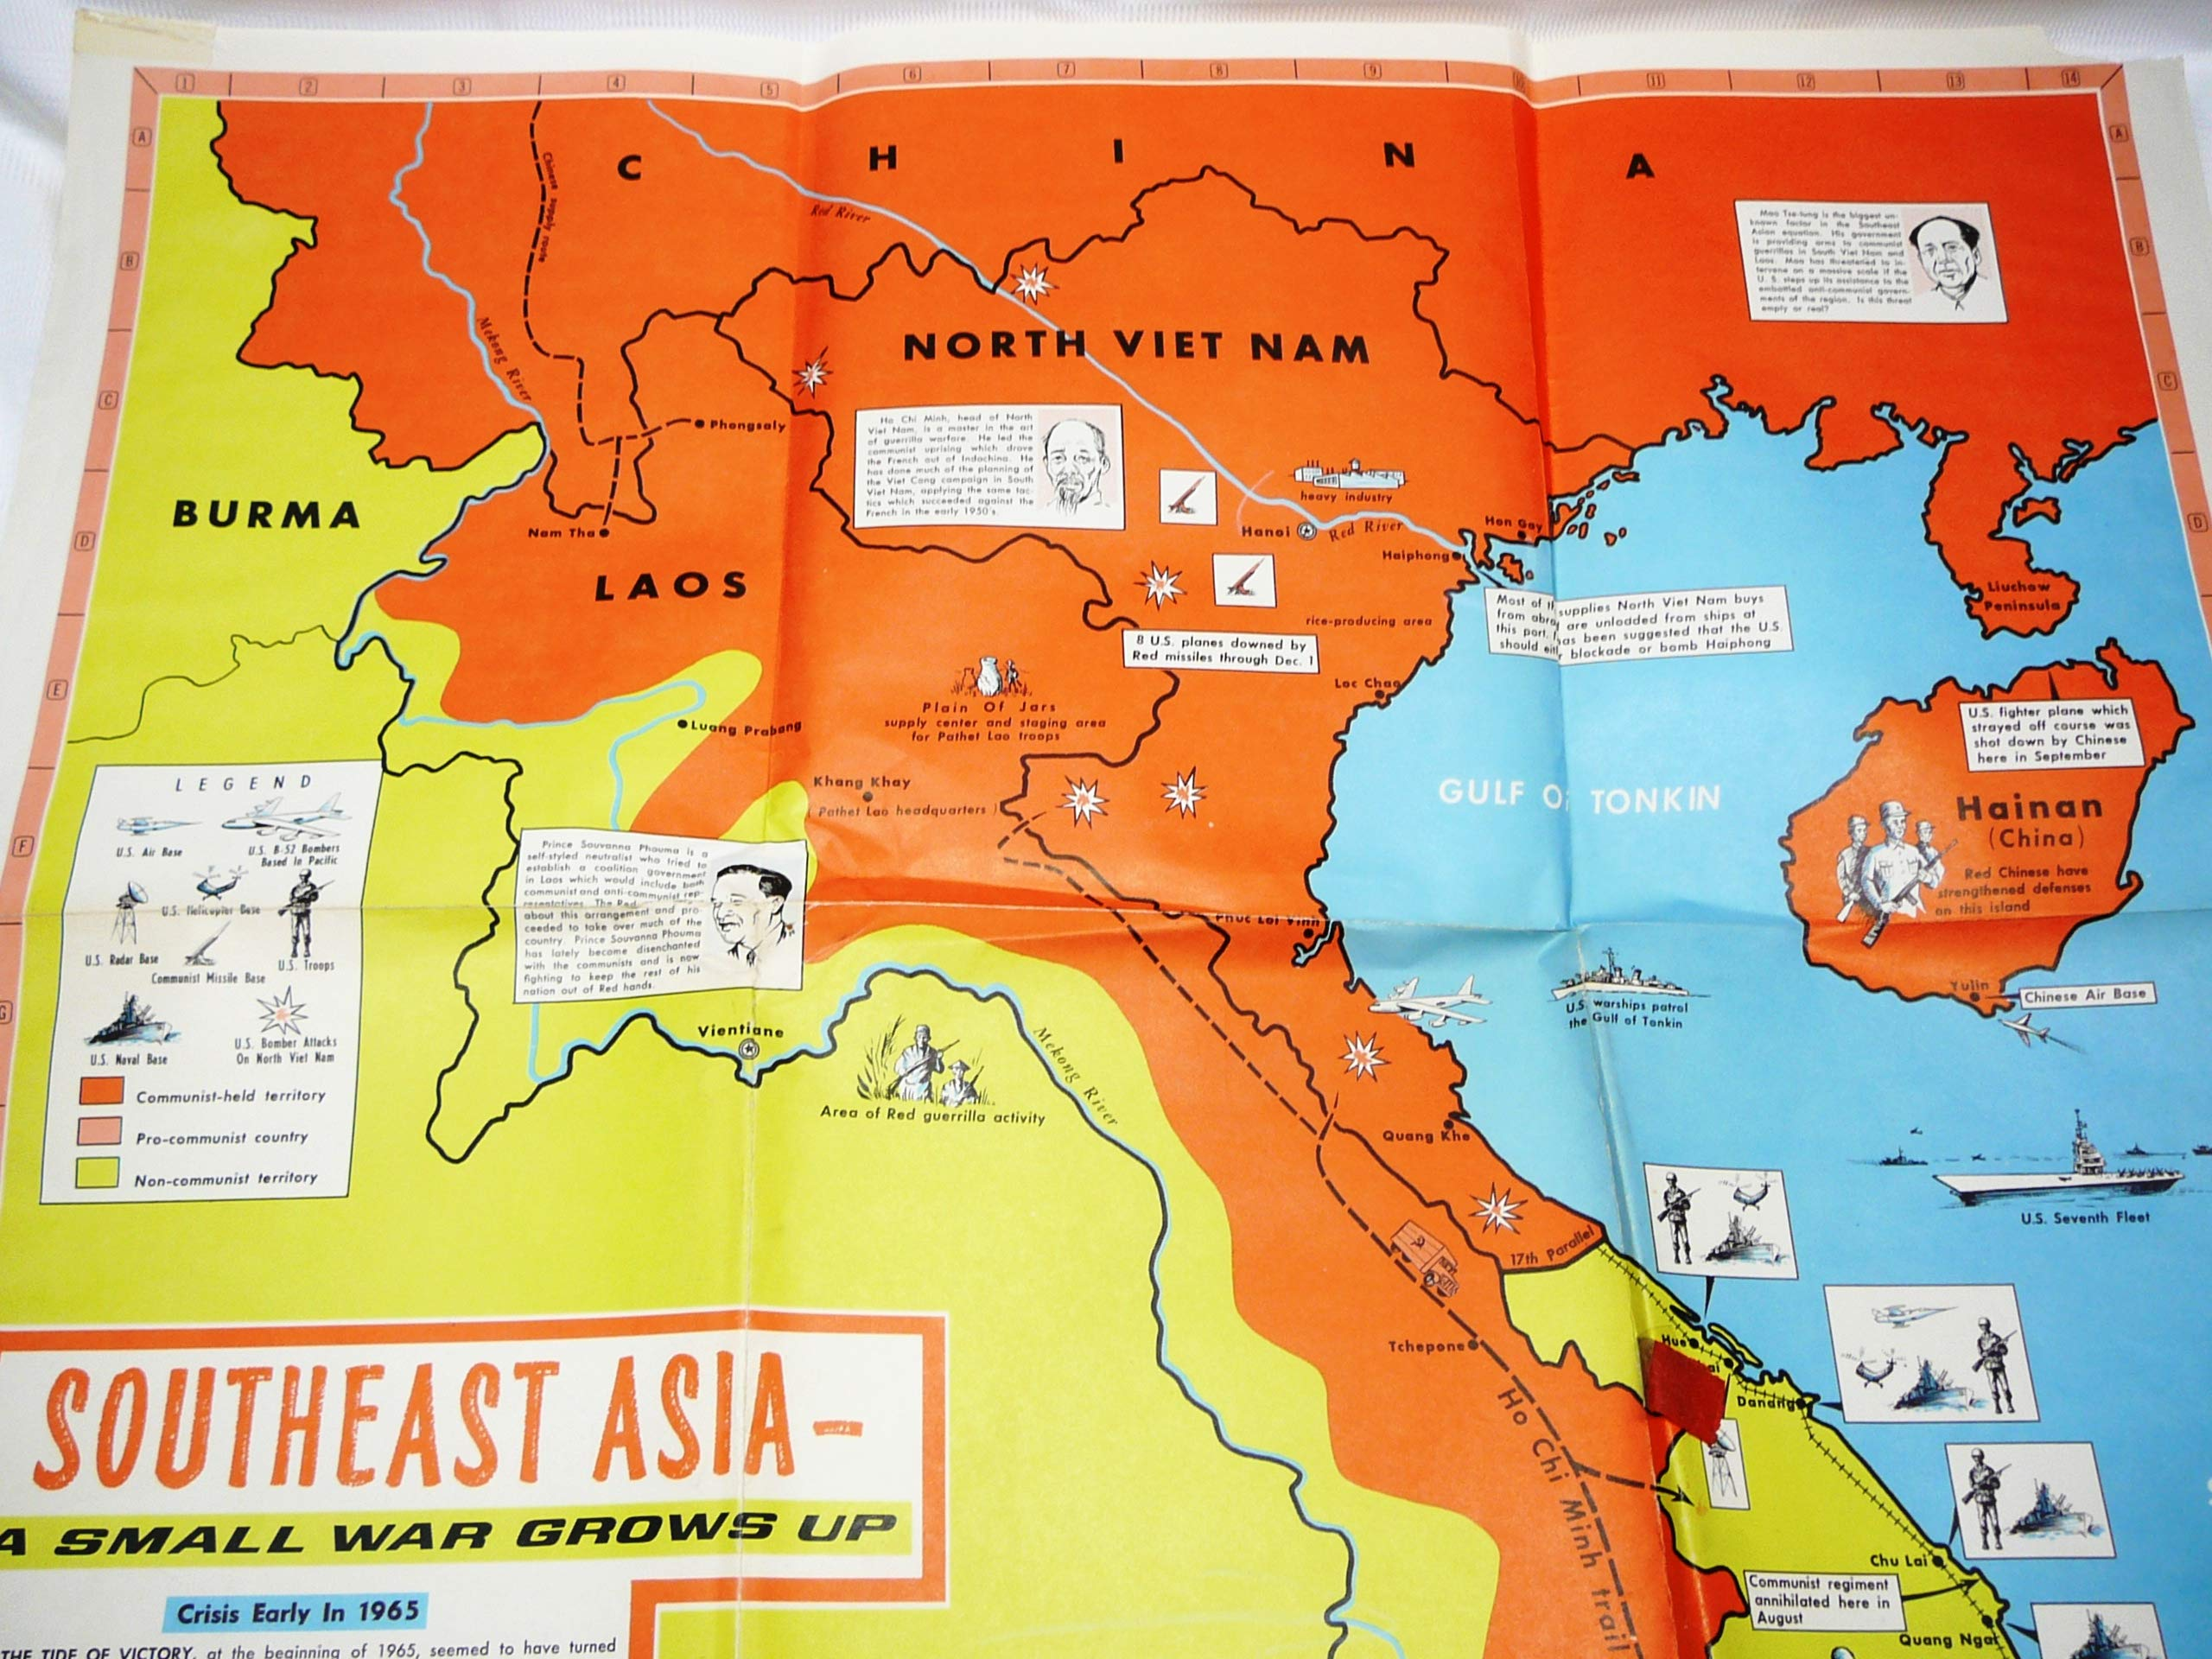 Map Of Asia During Vietnam War.Headline Focus Wall Map Southeast Asia A Small War Grows Up 1965